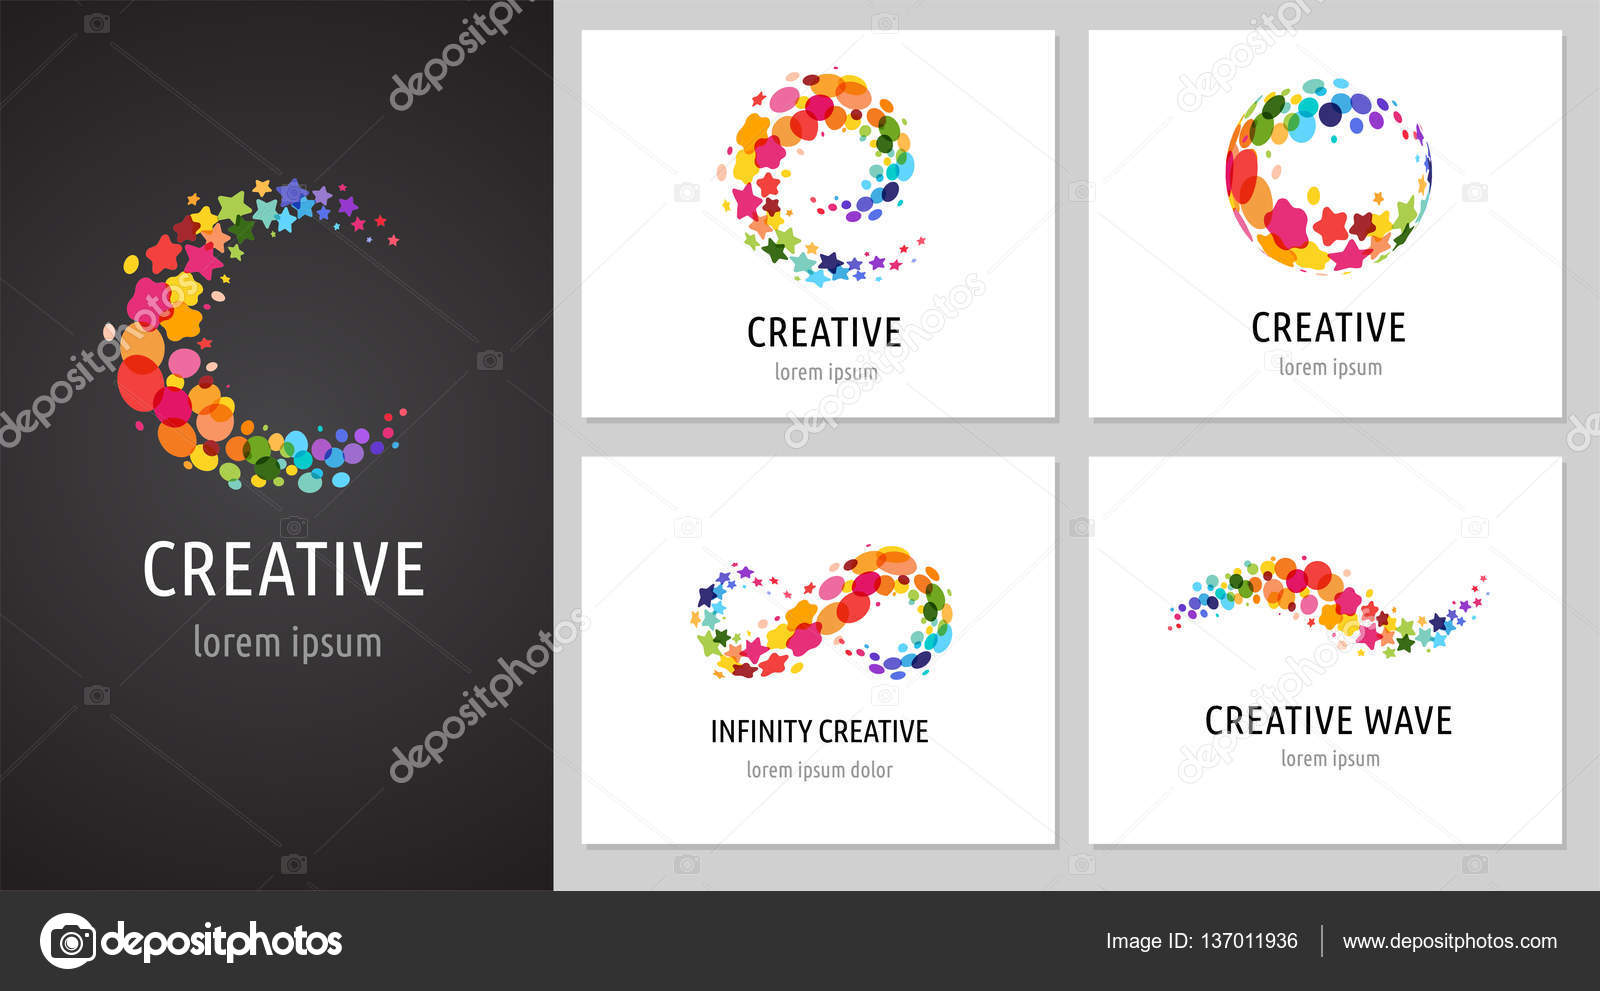 Creative Digital Abstract Colorful Icons Elements And Symbols